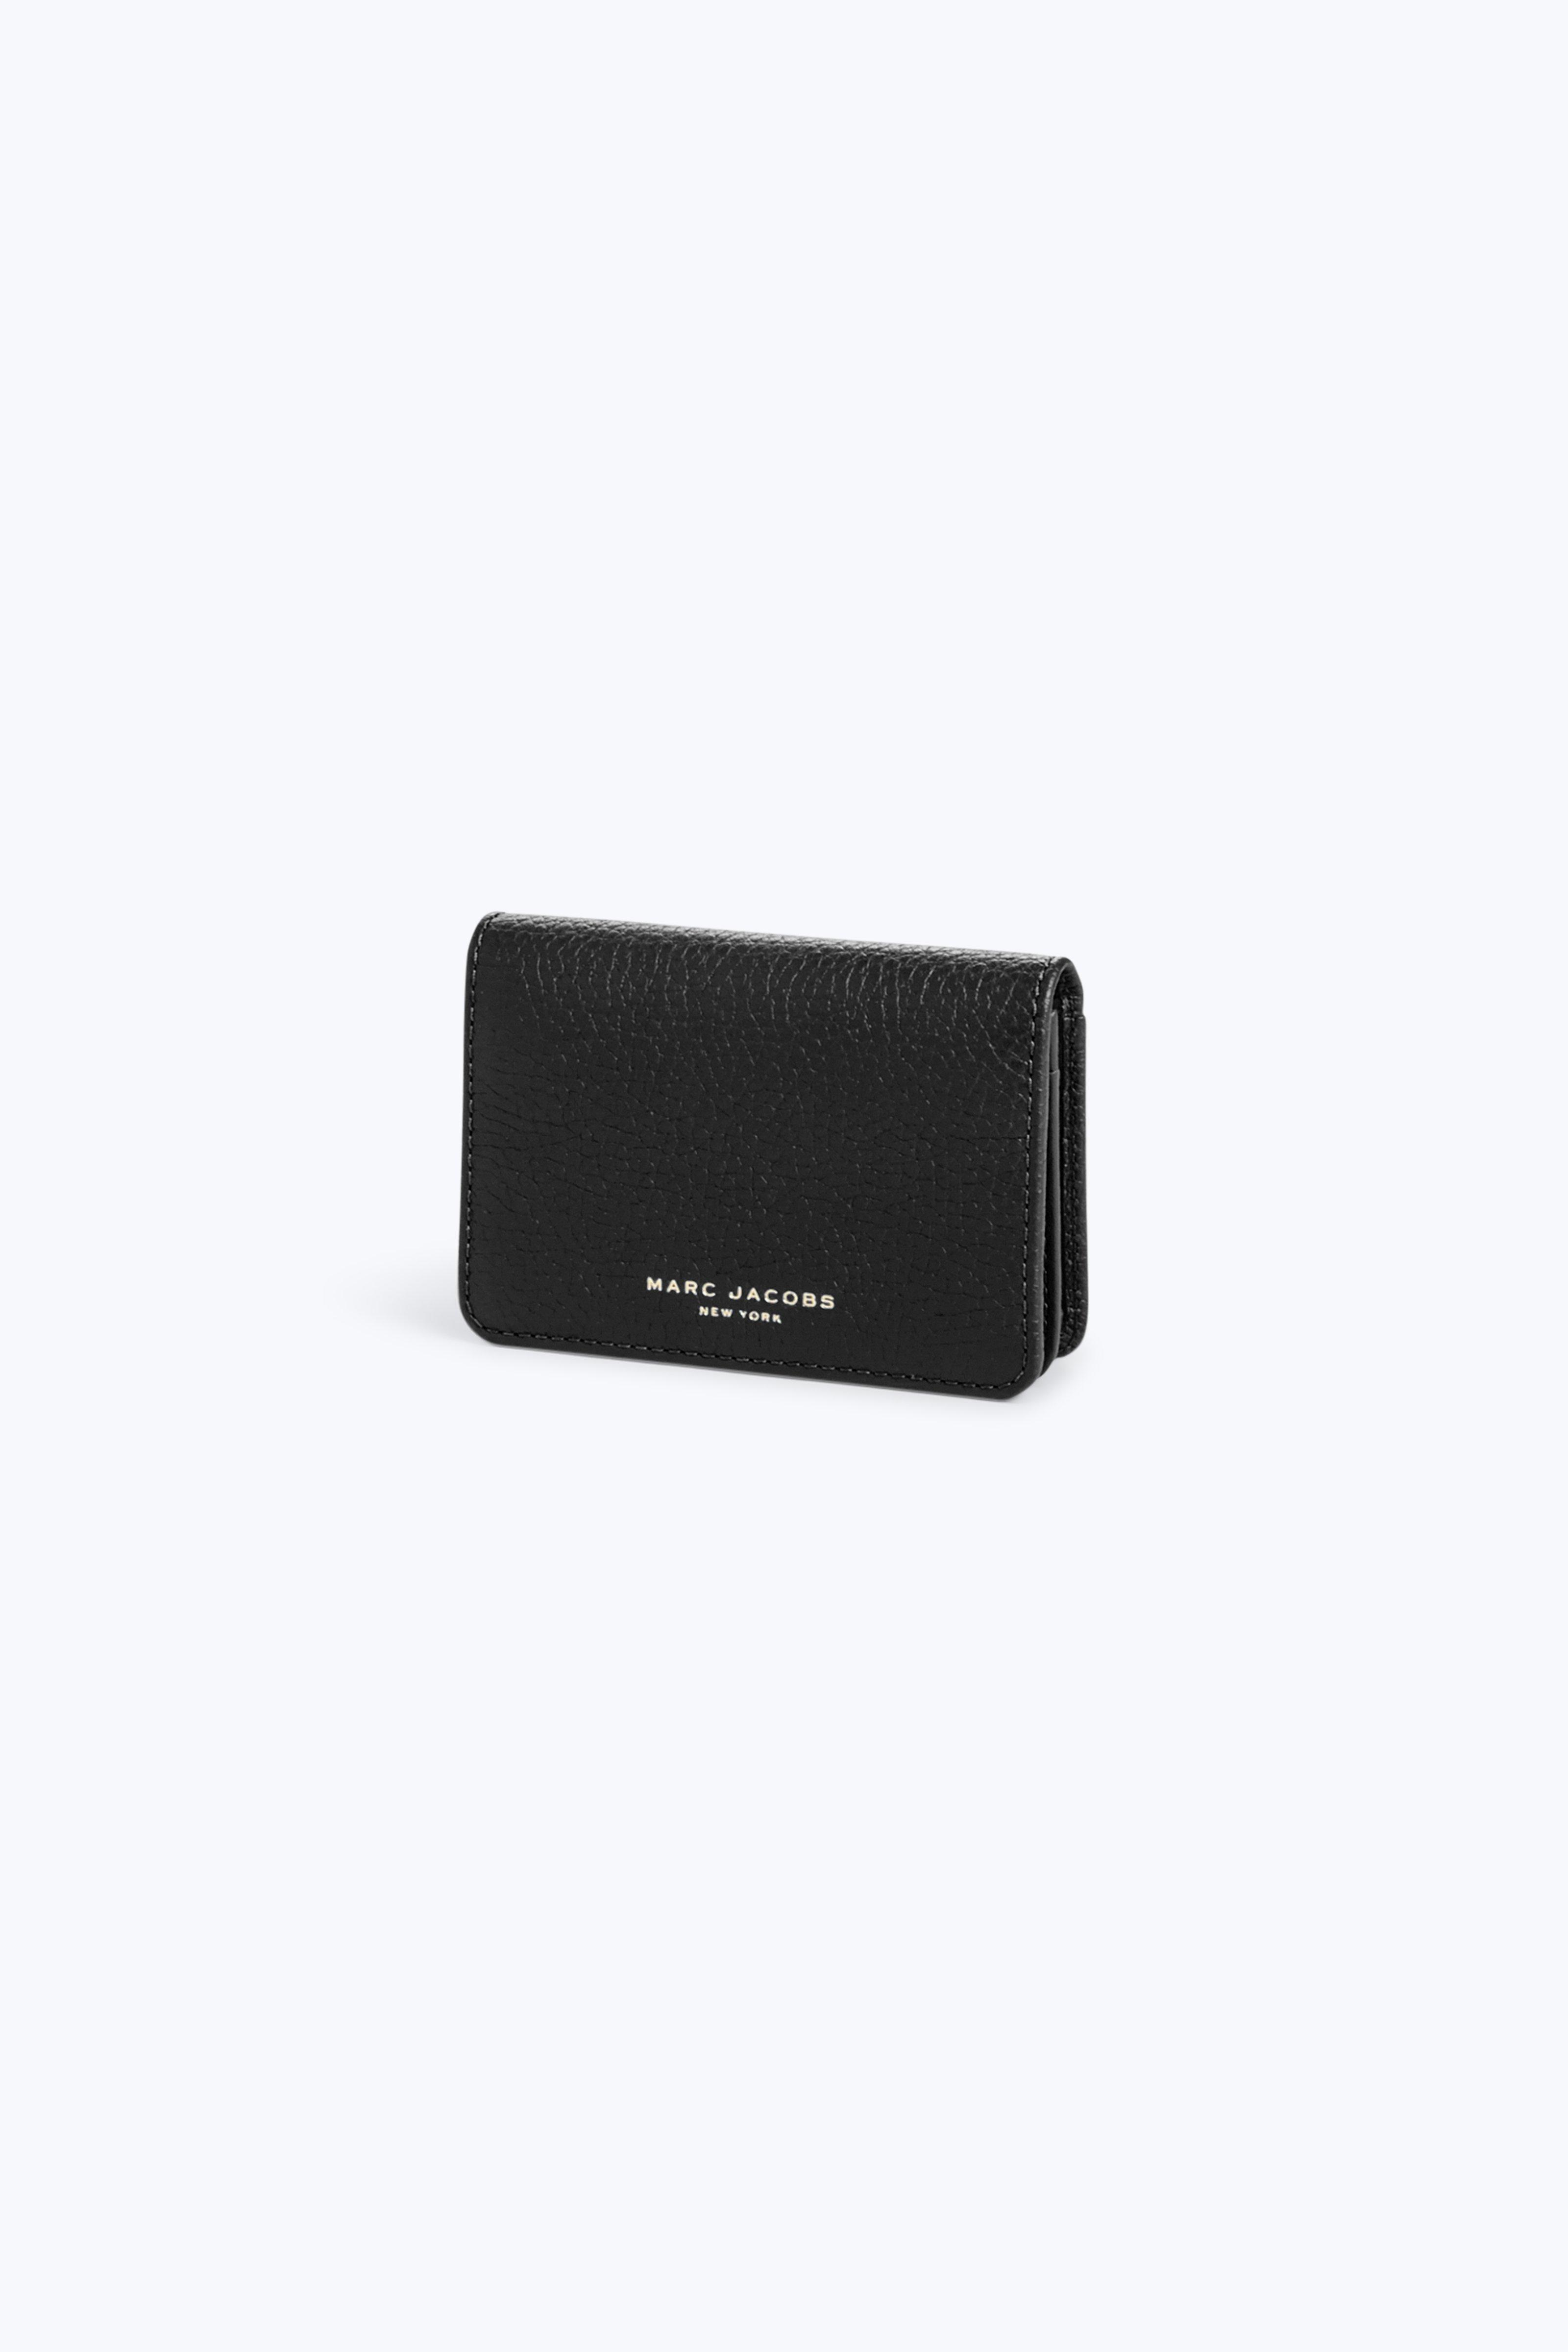 Lyst marc jacobs gotham business card case in black gallery previously sold at marc jacobs colourmoves